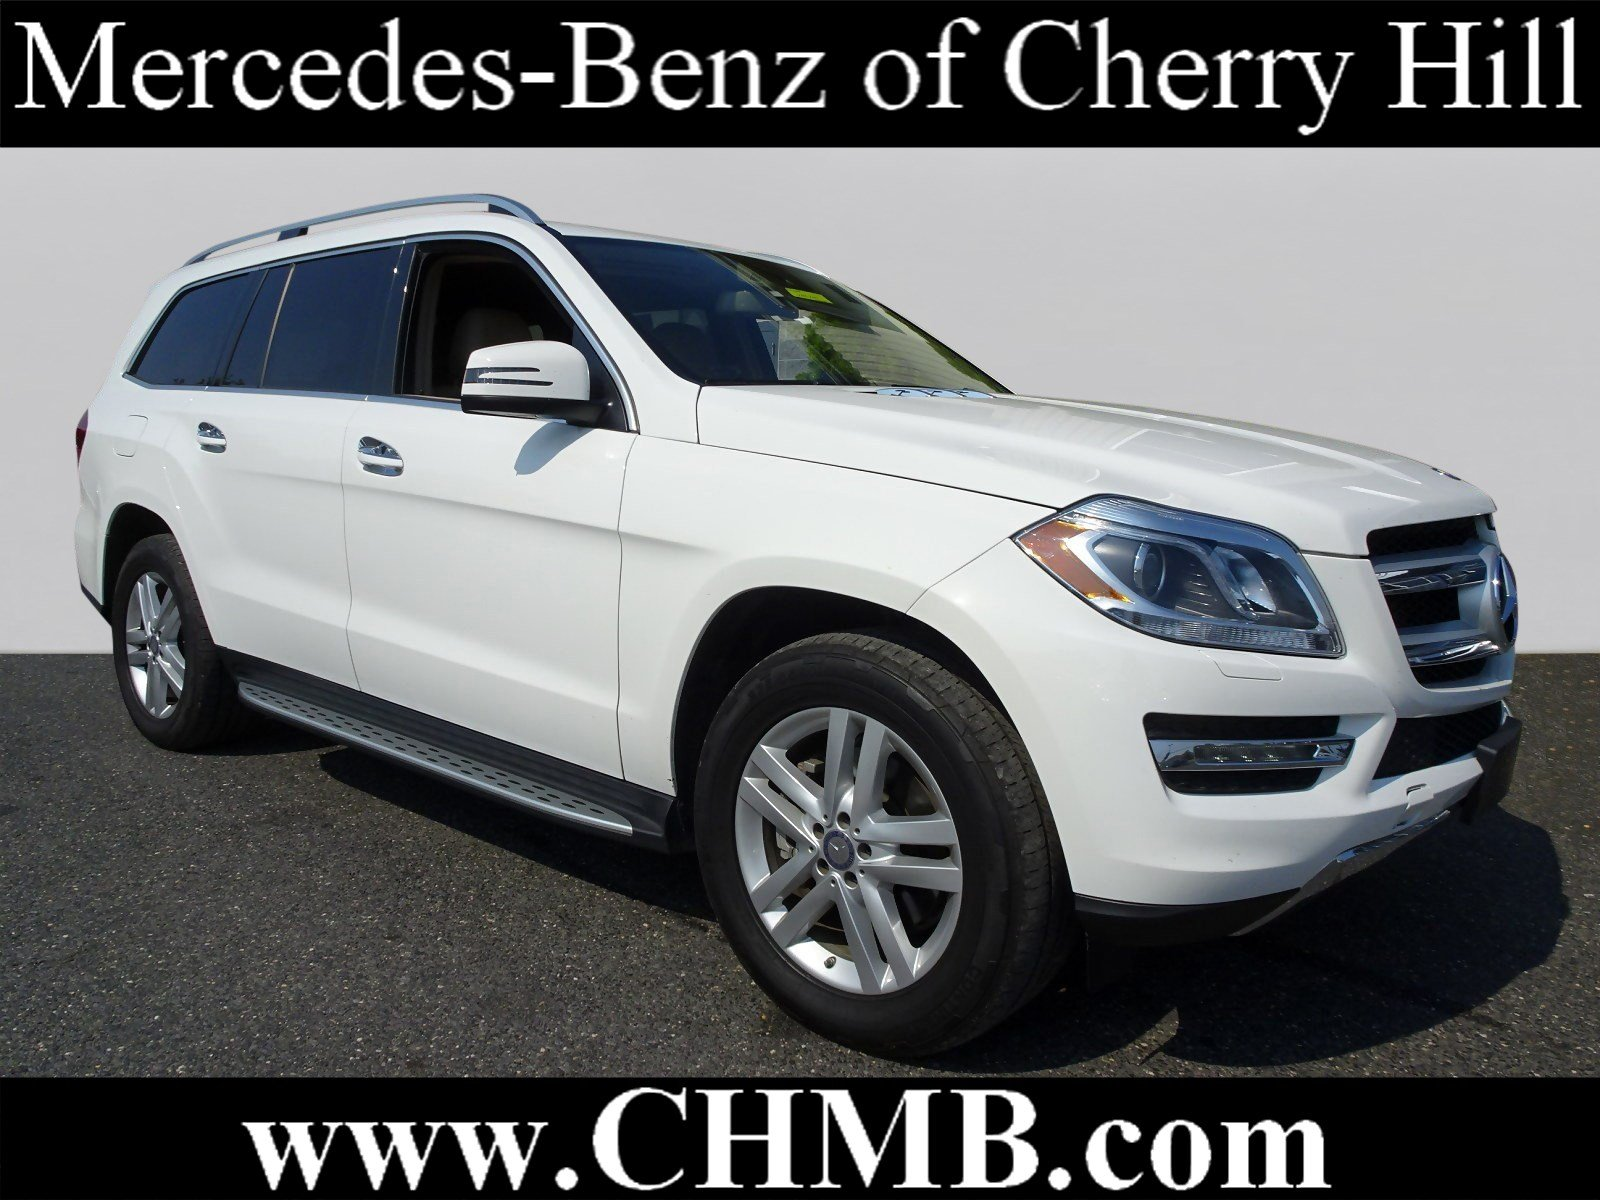 Certified Pre Owned 2016 Mercedes Benz GL GL 450 SUV in Cherry Hill